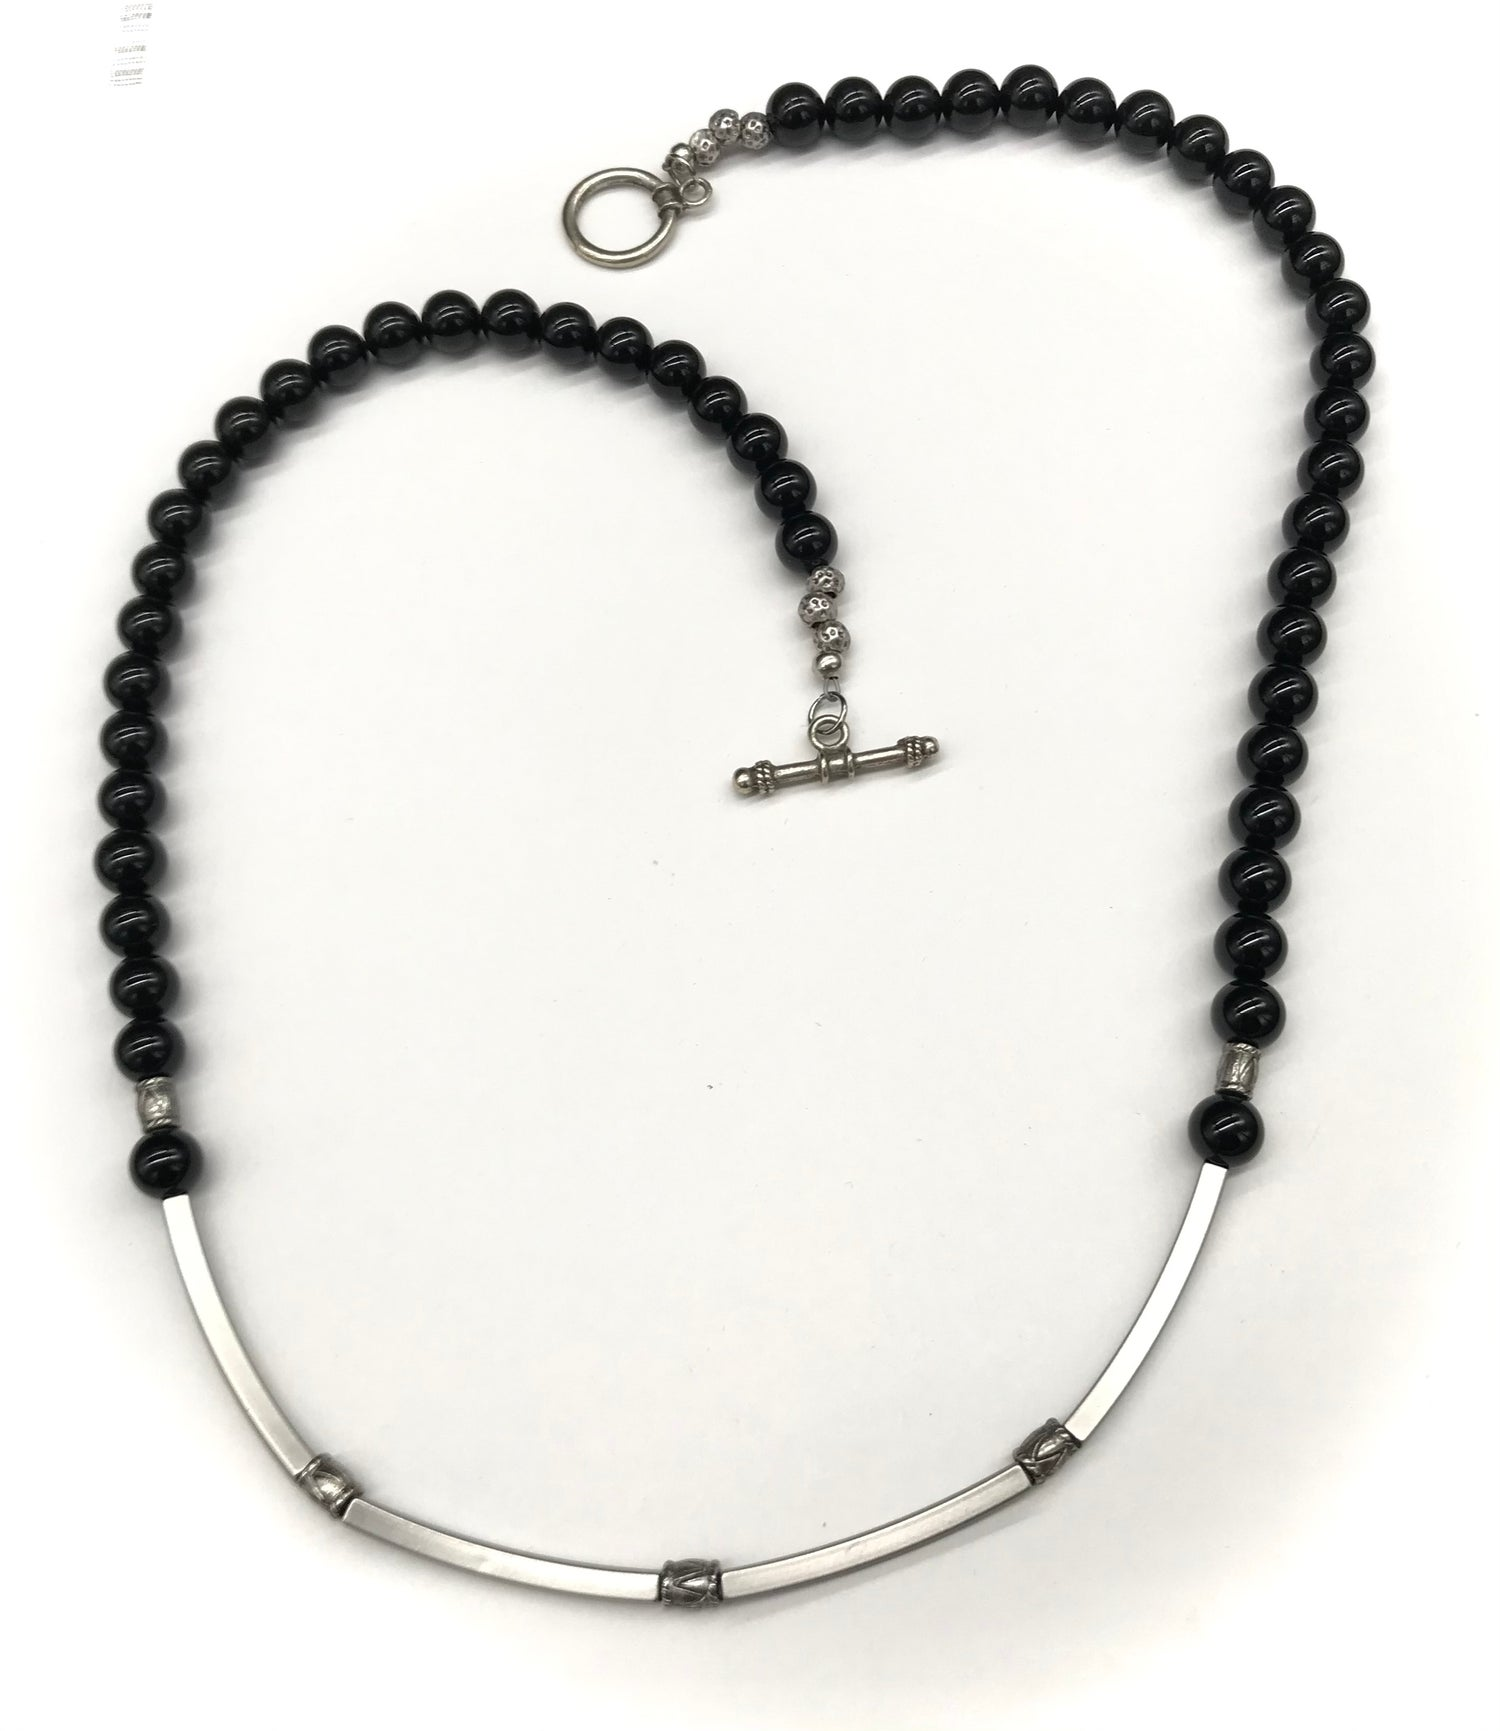 Image of Black Onyx and Square Tubes Necklace